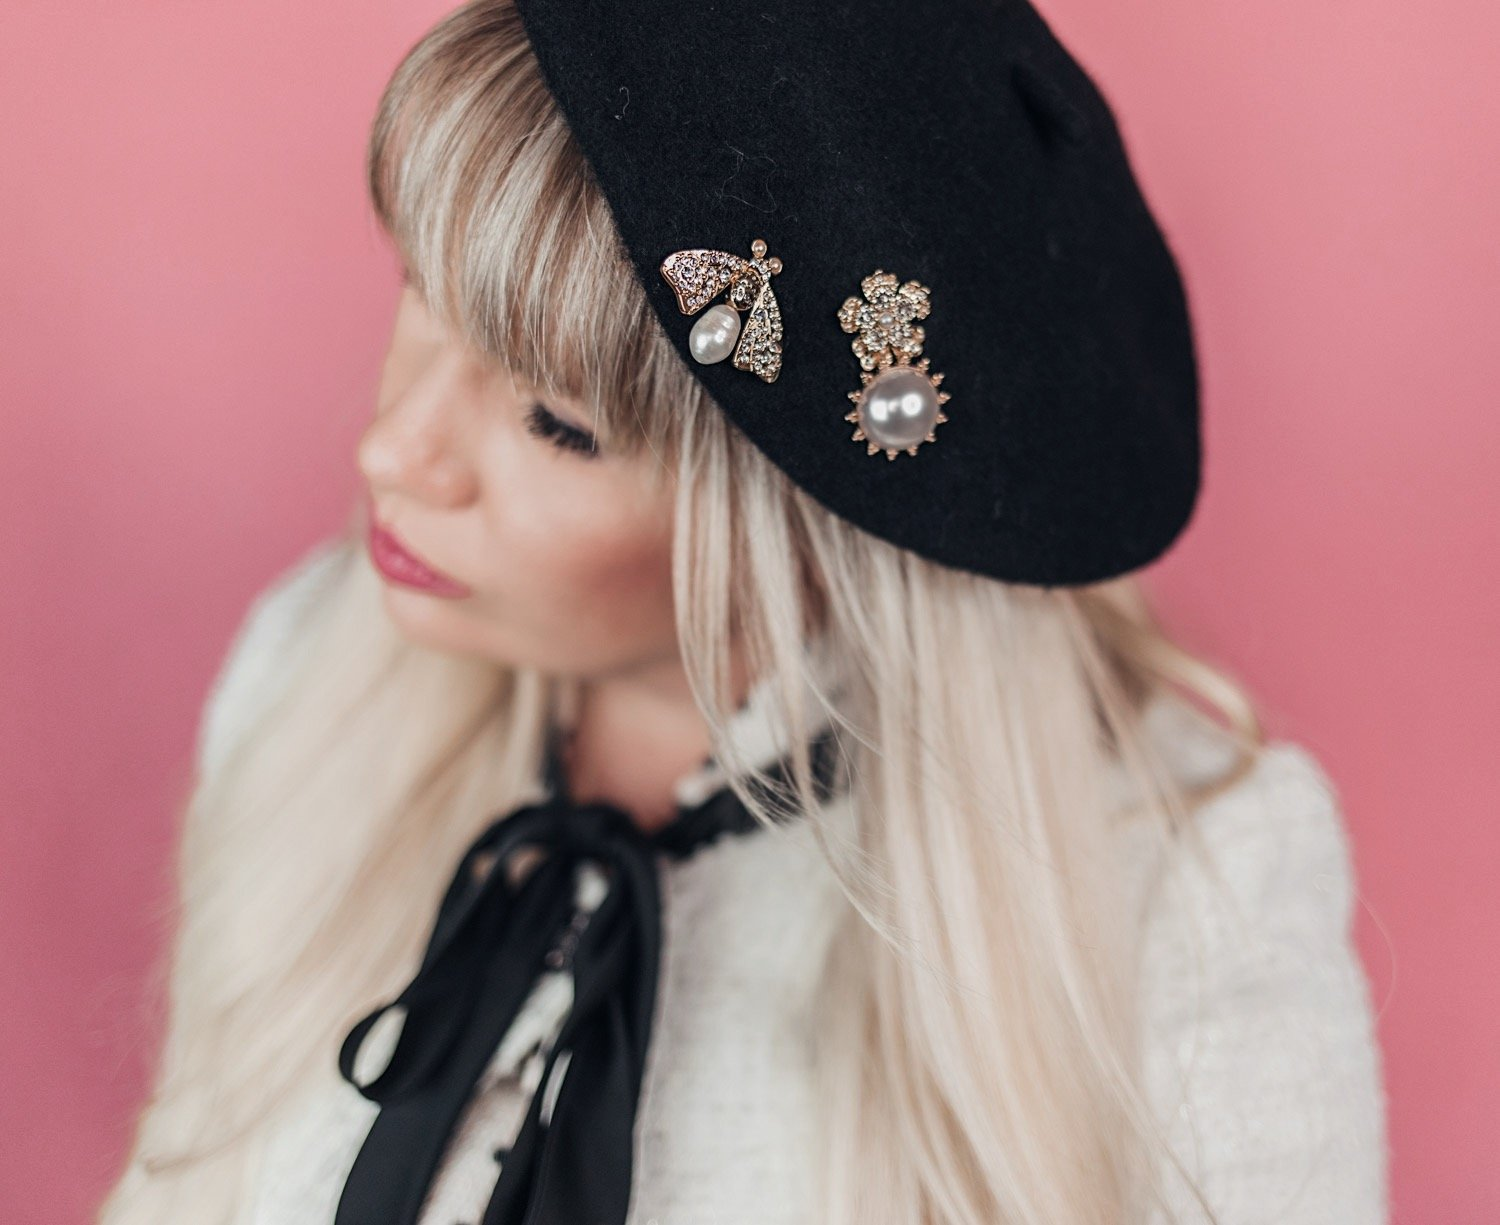 Fashion blogger Elizabeth Hugen of Lizzie in Lace shares creative ways to wear earrings without pierced ears and styles a black beret